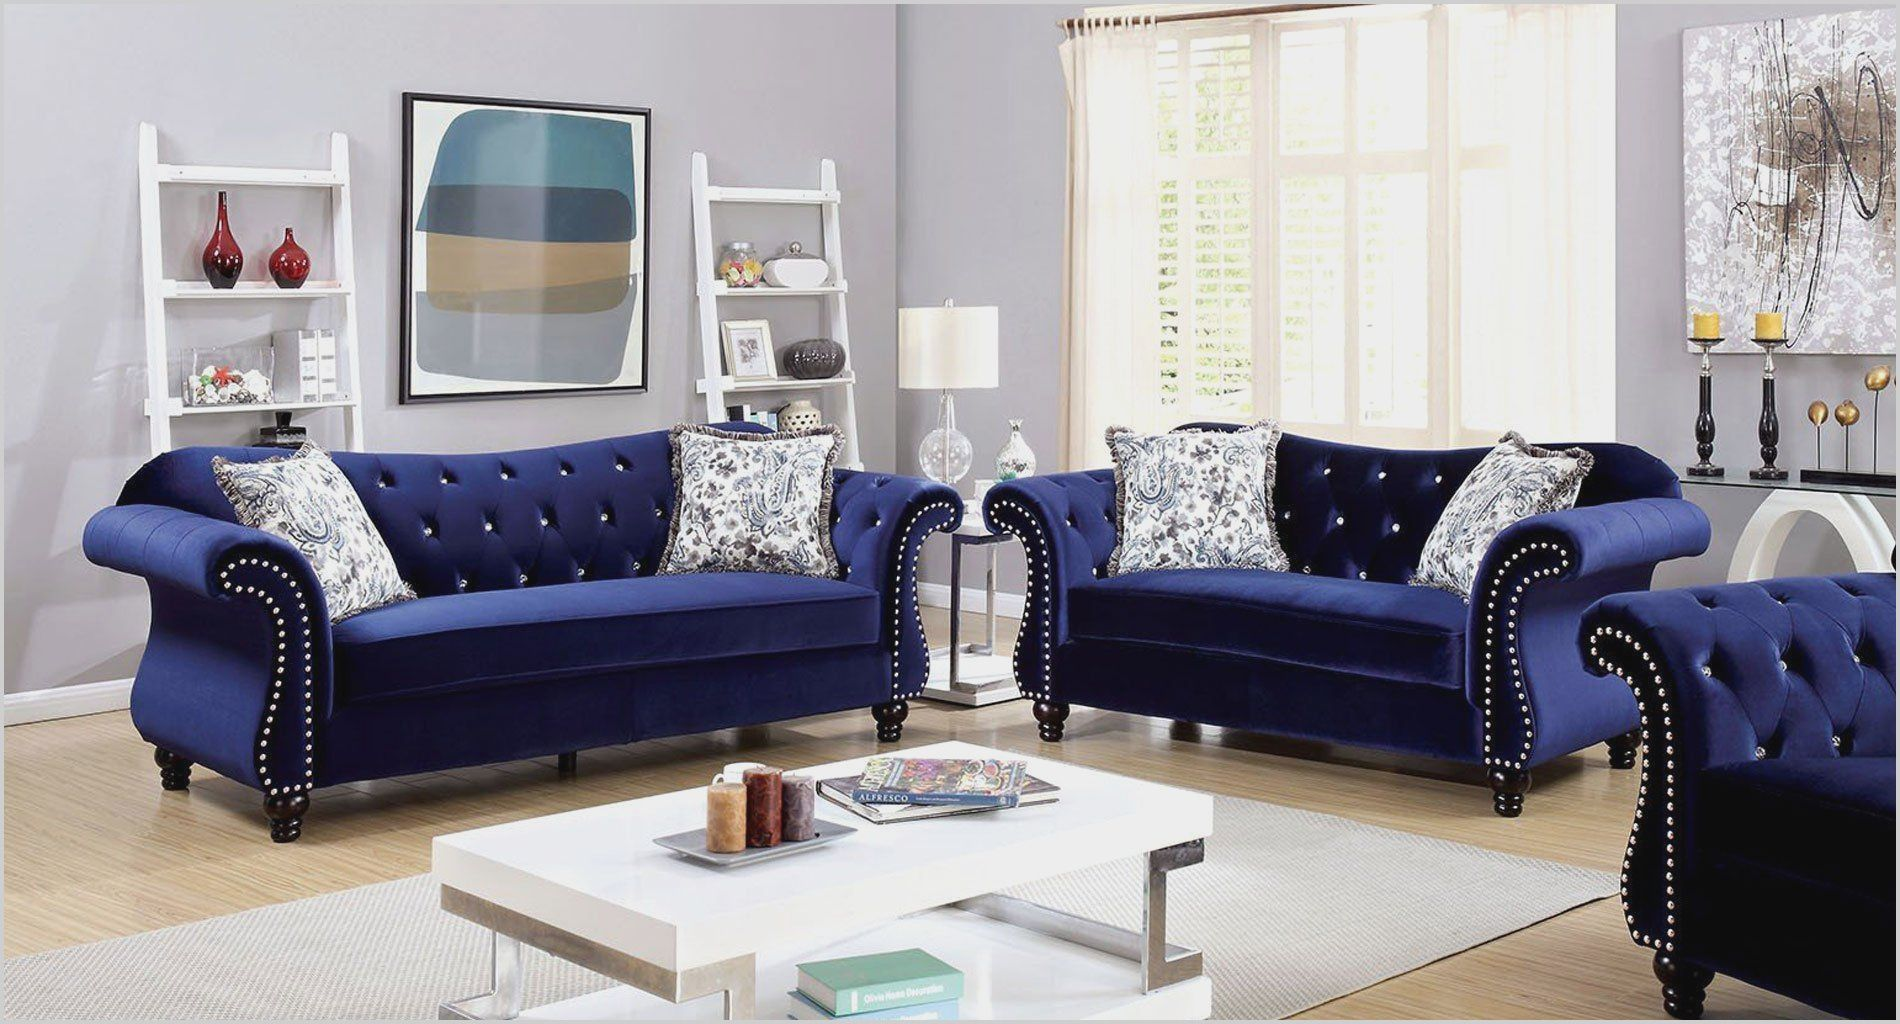 Living Room with Navy Blue sofa in 2020 Blue sofas